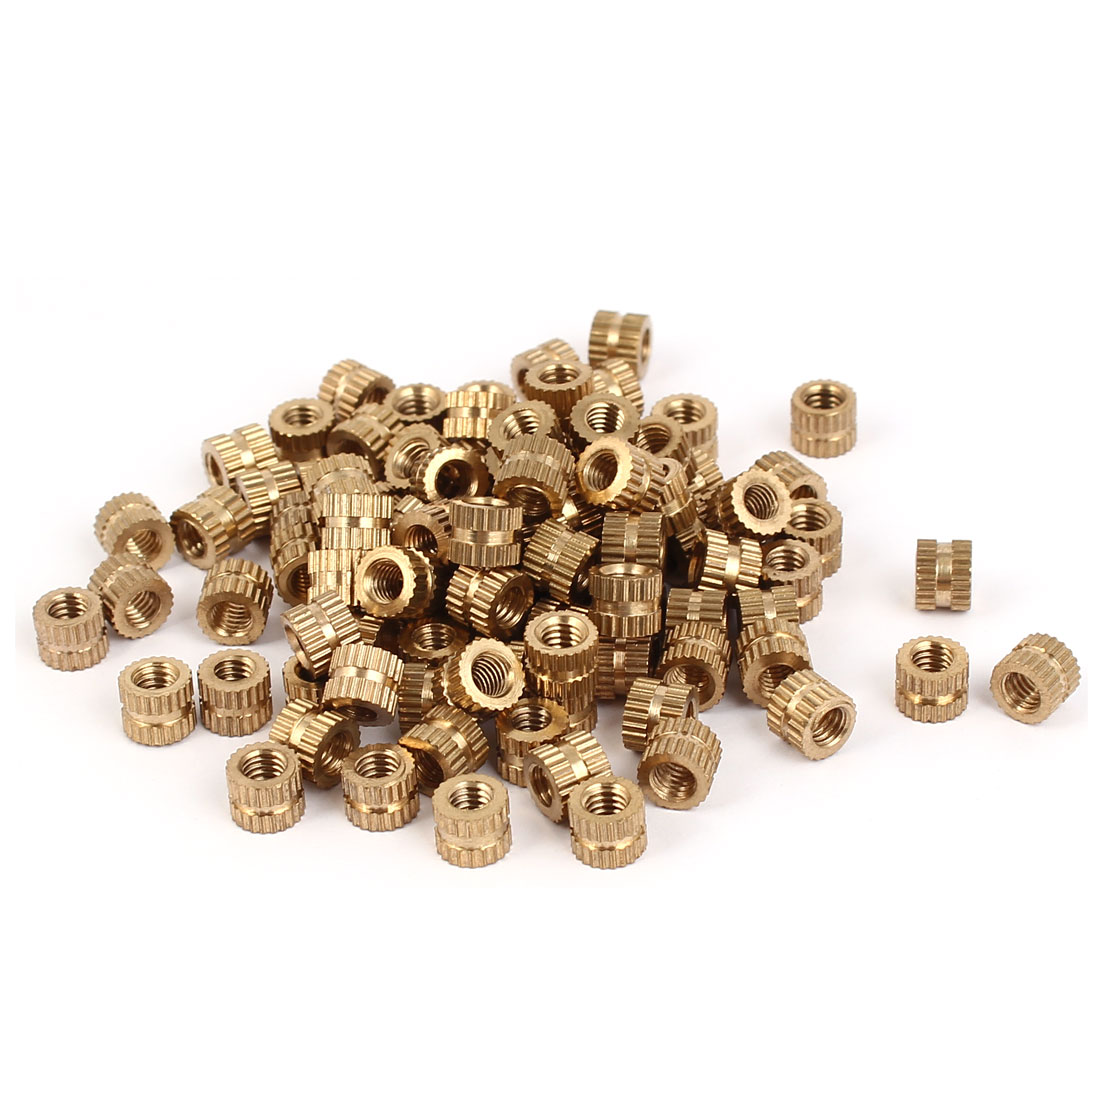 M4 x 5mm Brass Cylinder Injection Molding Knurled Threaded Embedment Nuts 100PCS